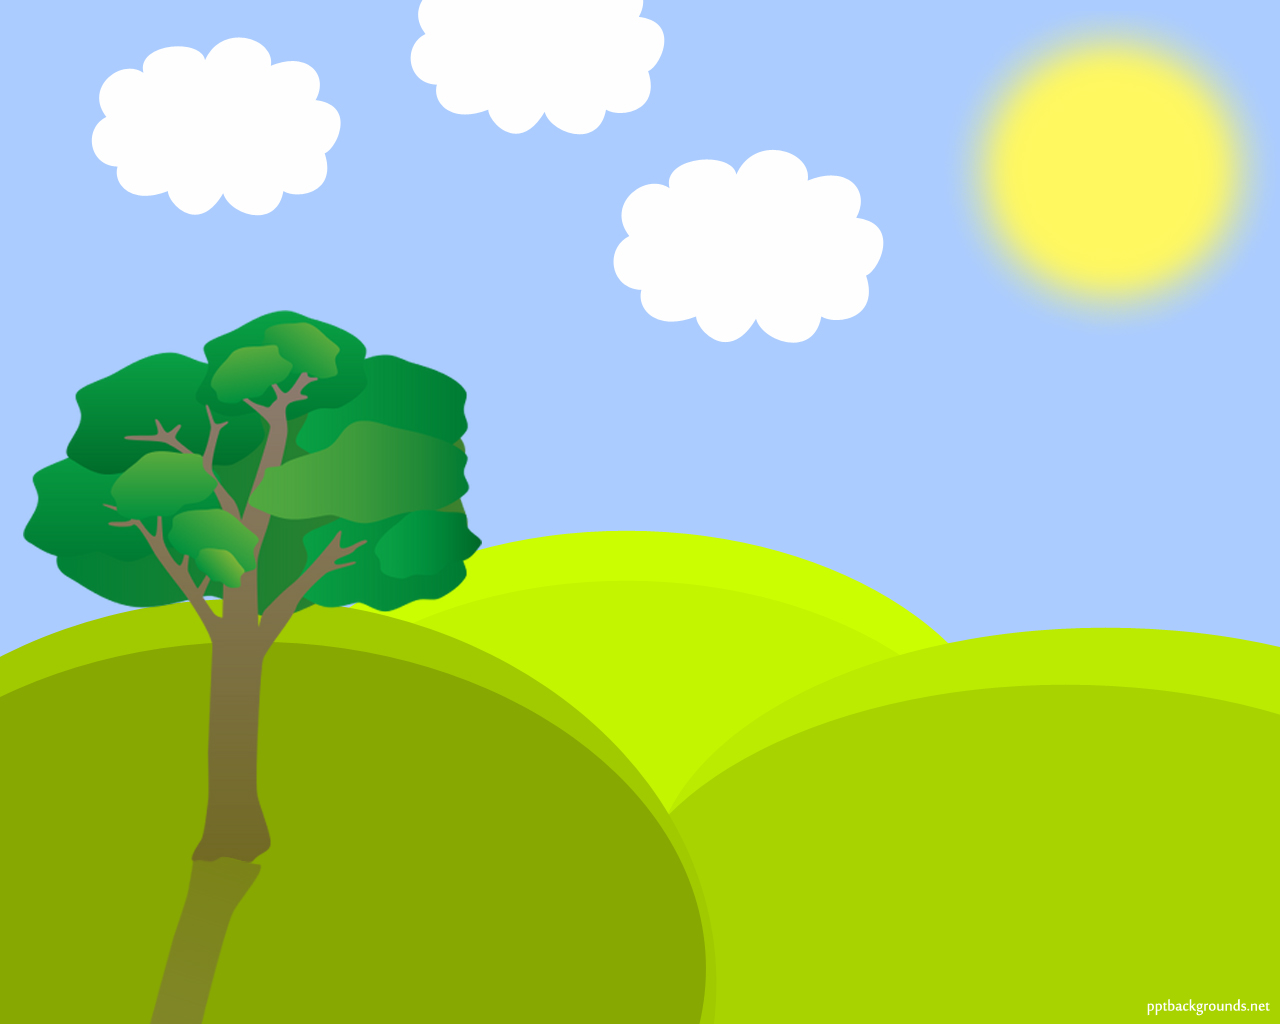 Nature clipart spring. Free landscape vector backgrounds banner freeuse download